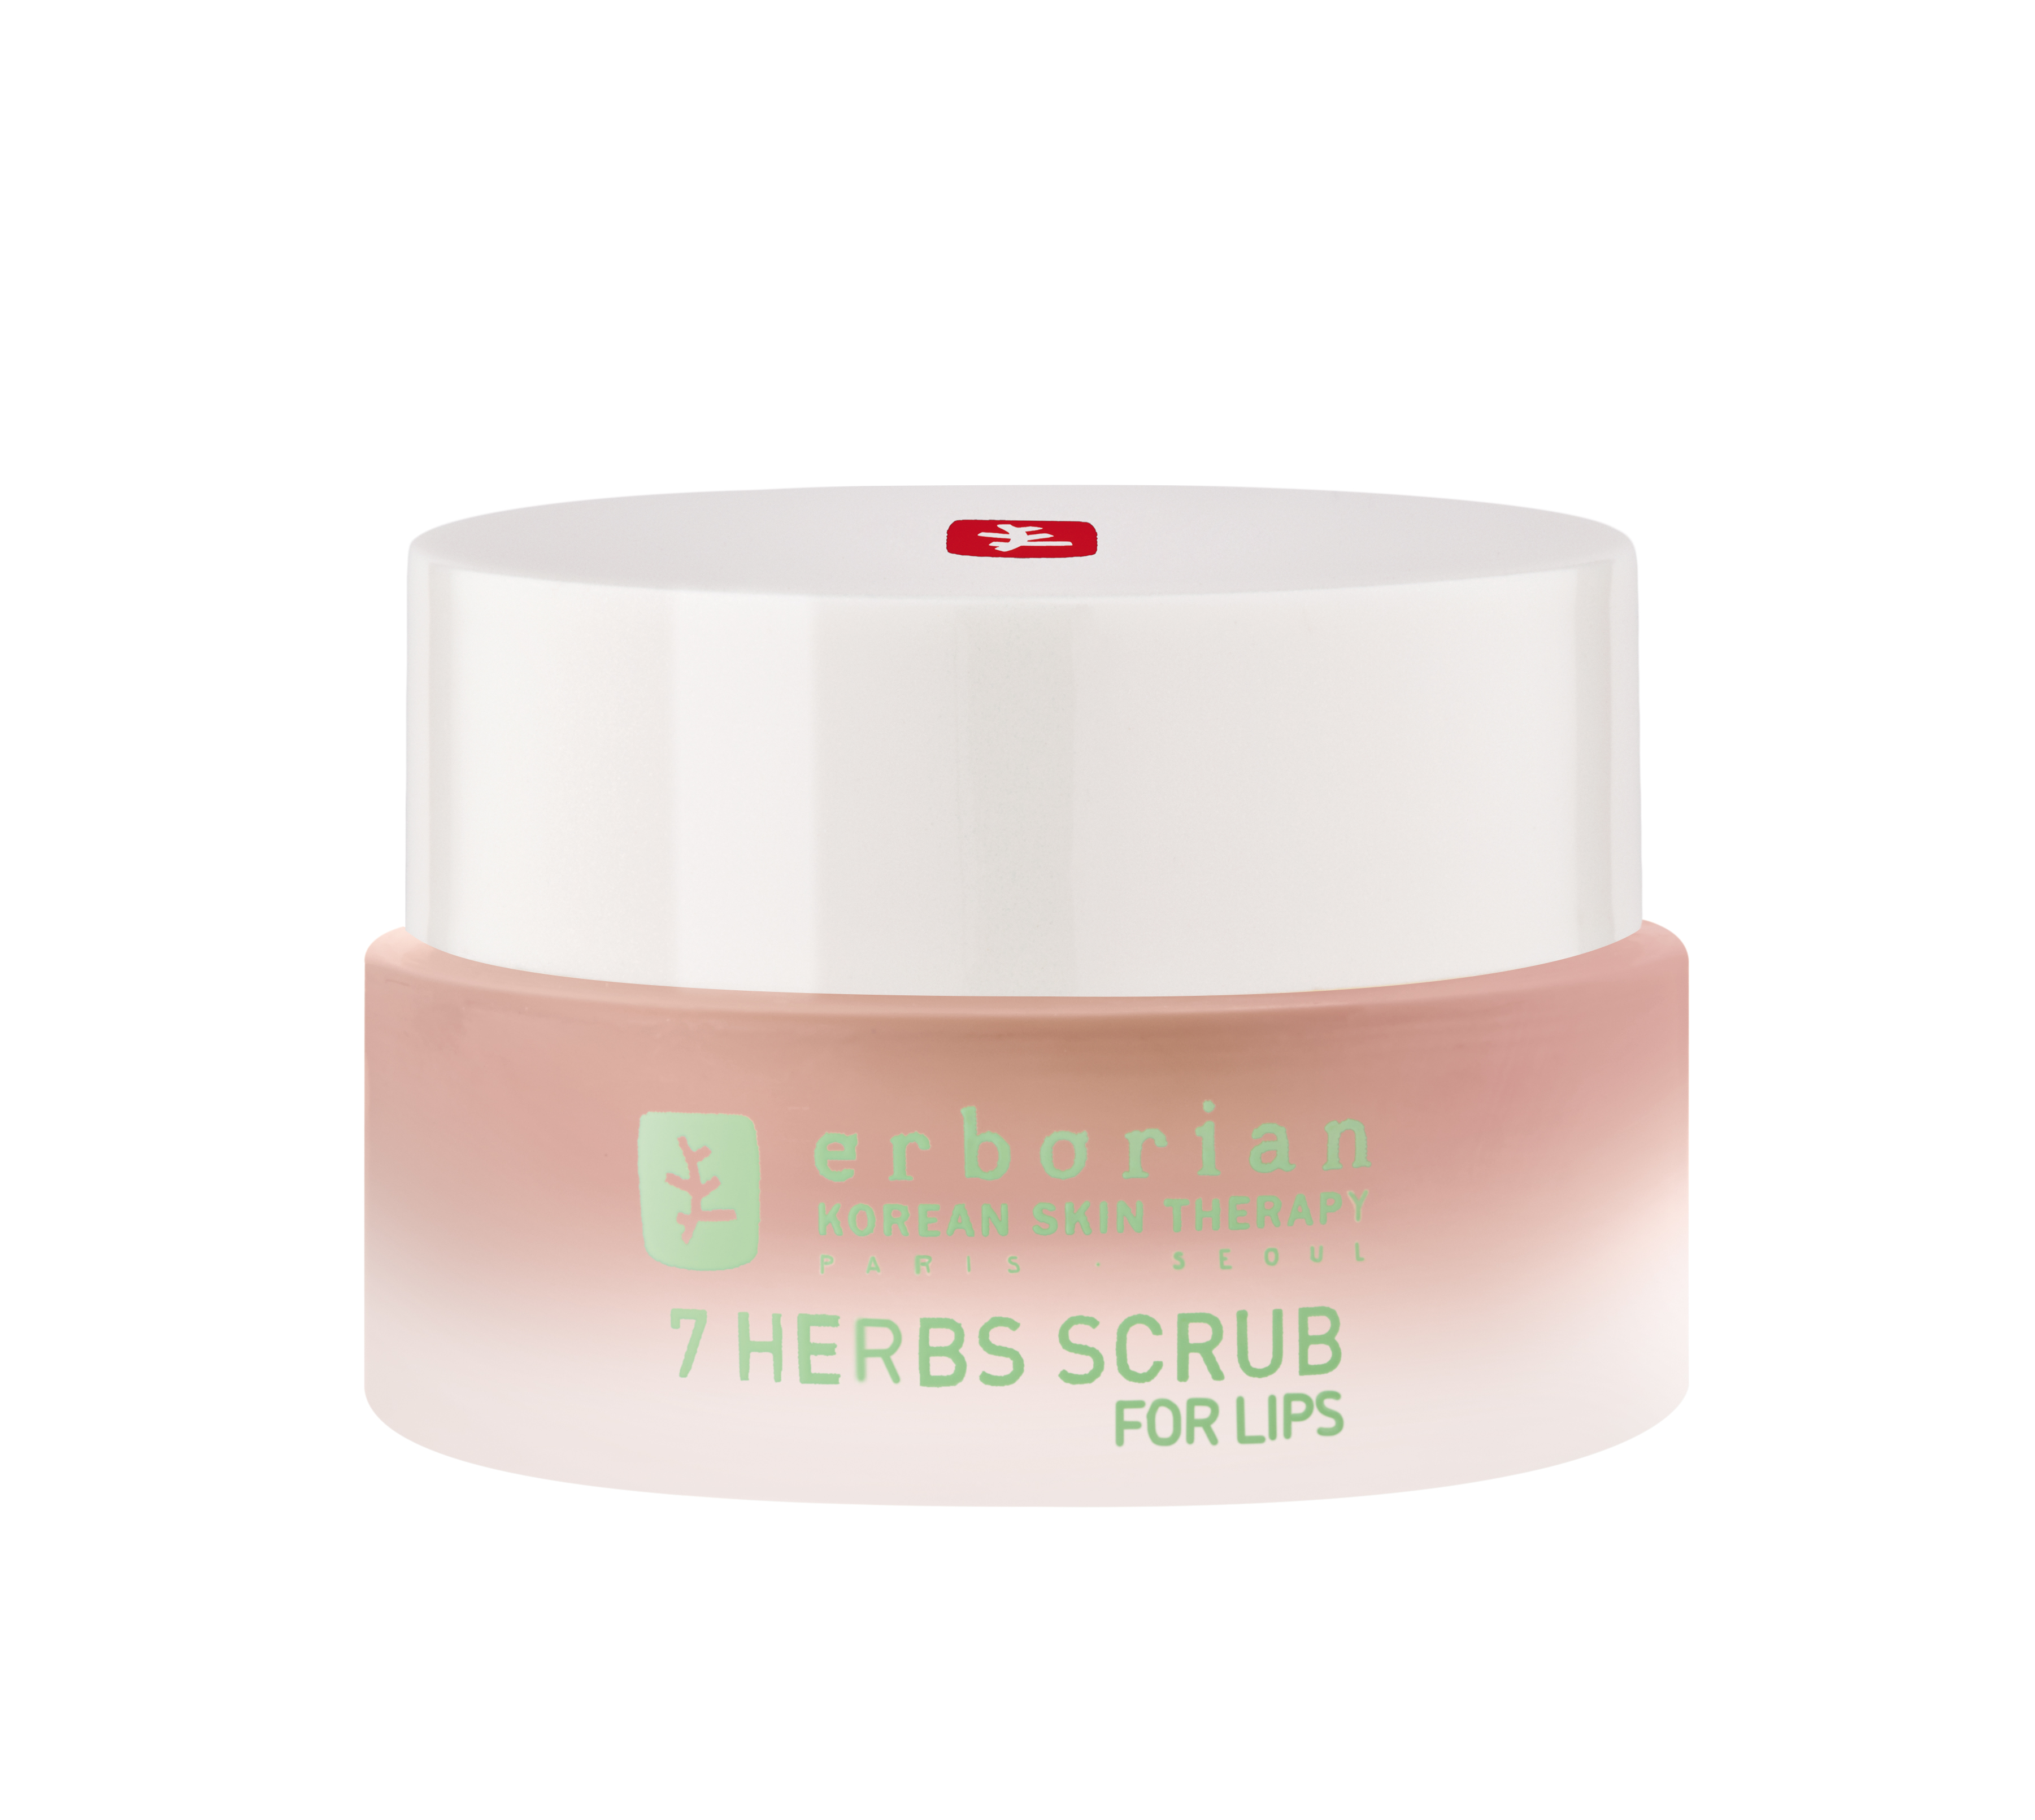 F1_7 HERBS SCRUB FOR LIPS 7ML PACK PRIMAIRE 6AA10214